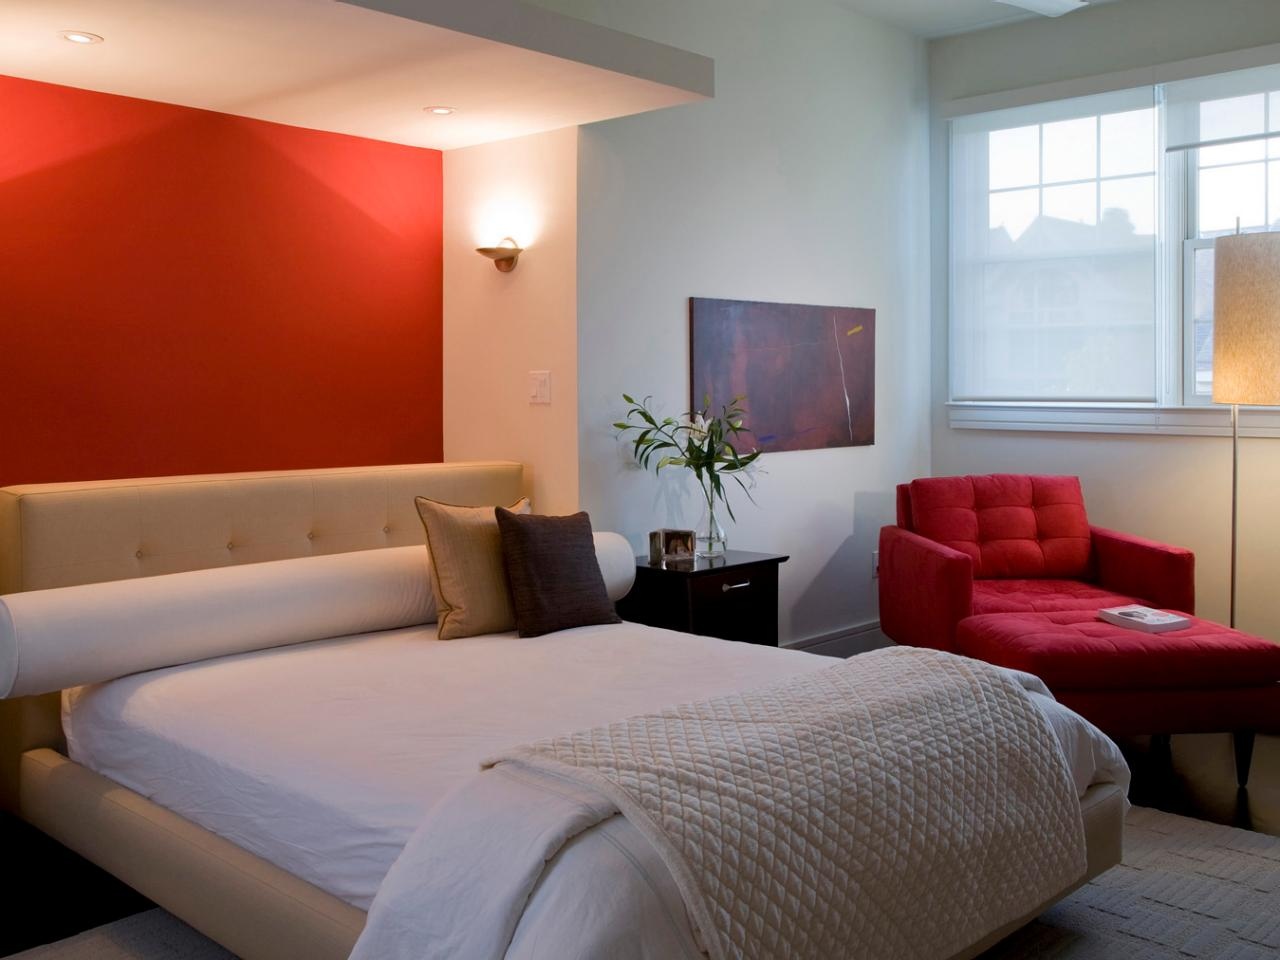 Color For Bedrooms bedroom wall color schemes: pictures, options & ideas | hgtv